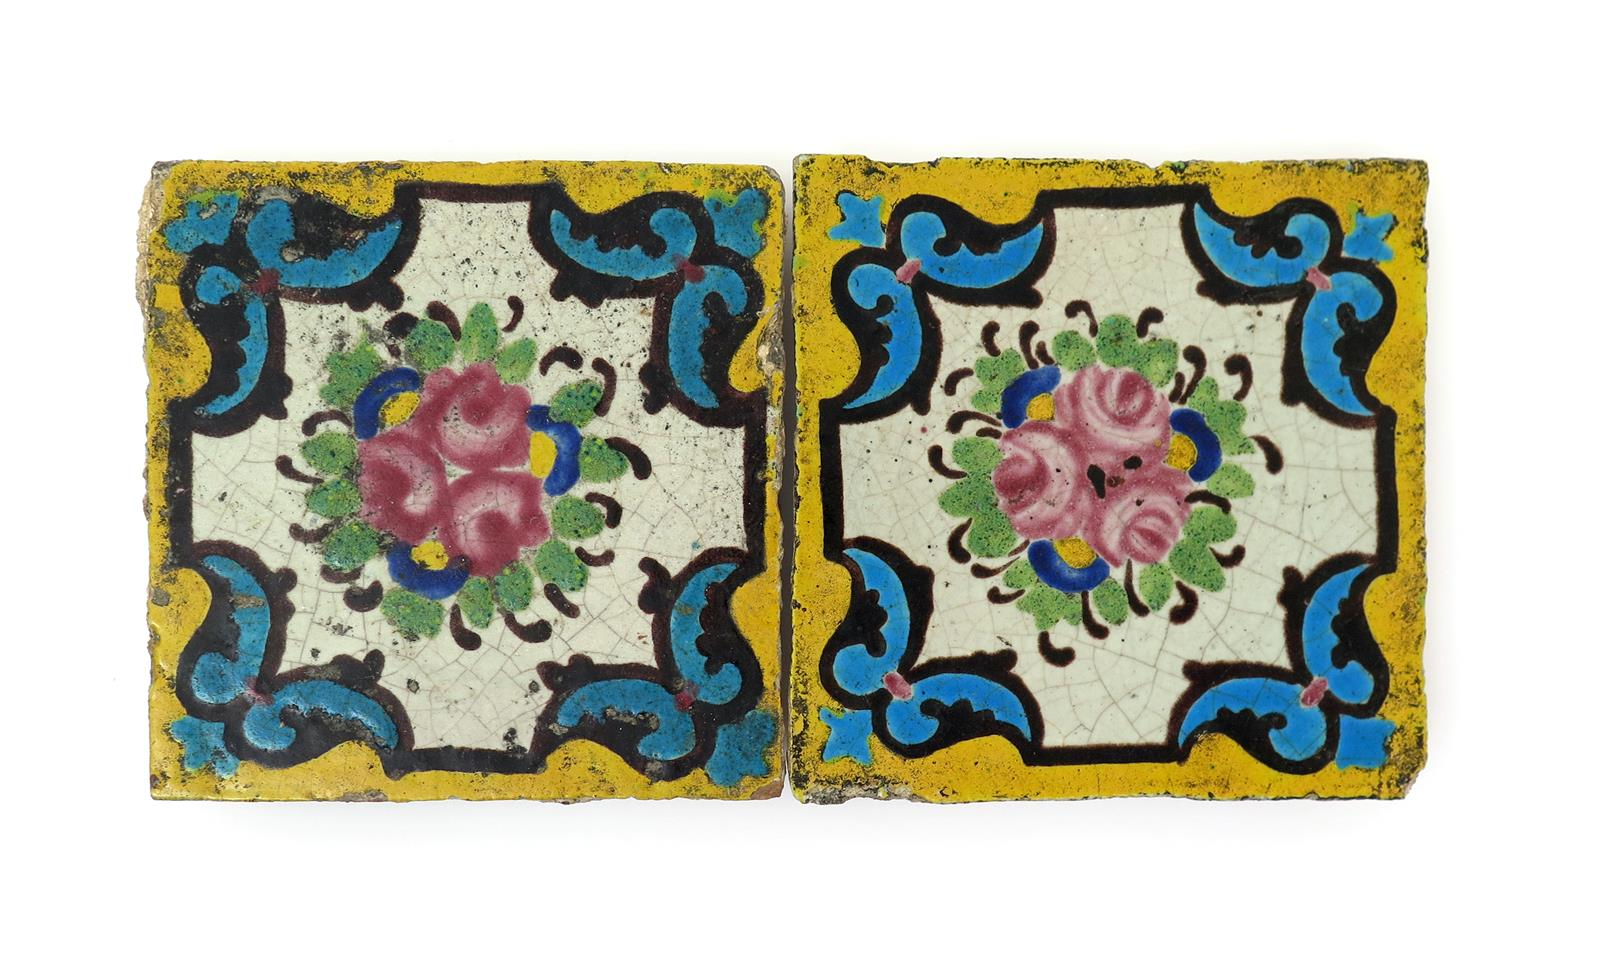 Two qajar pottery tiles late 19th century lot 1125 english and english and european ceramics and glass lot 1125 dailygadgetfo Images